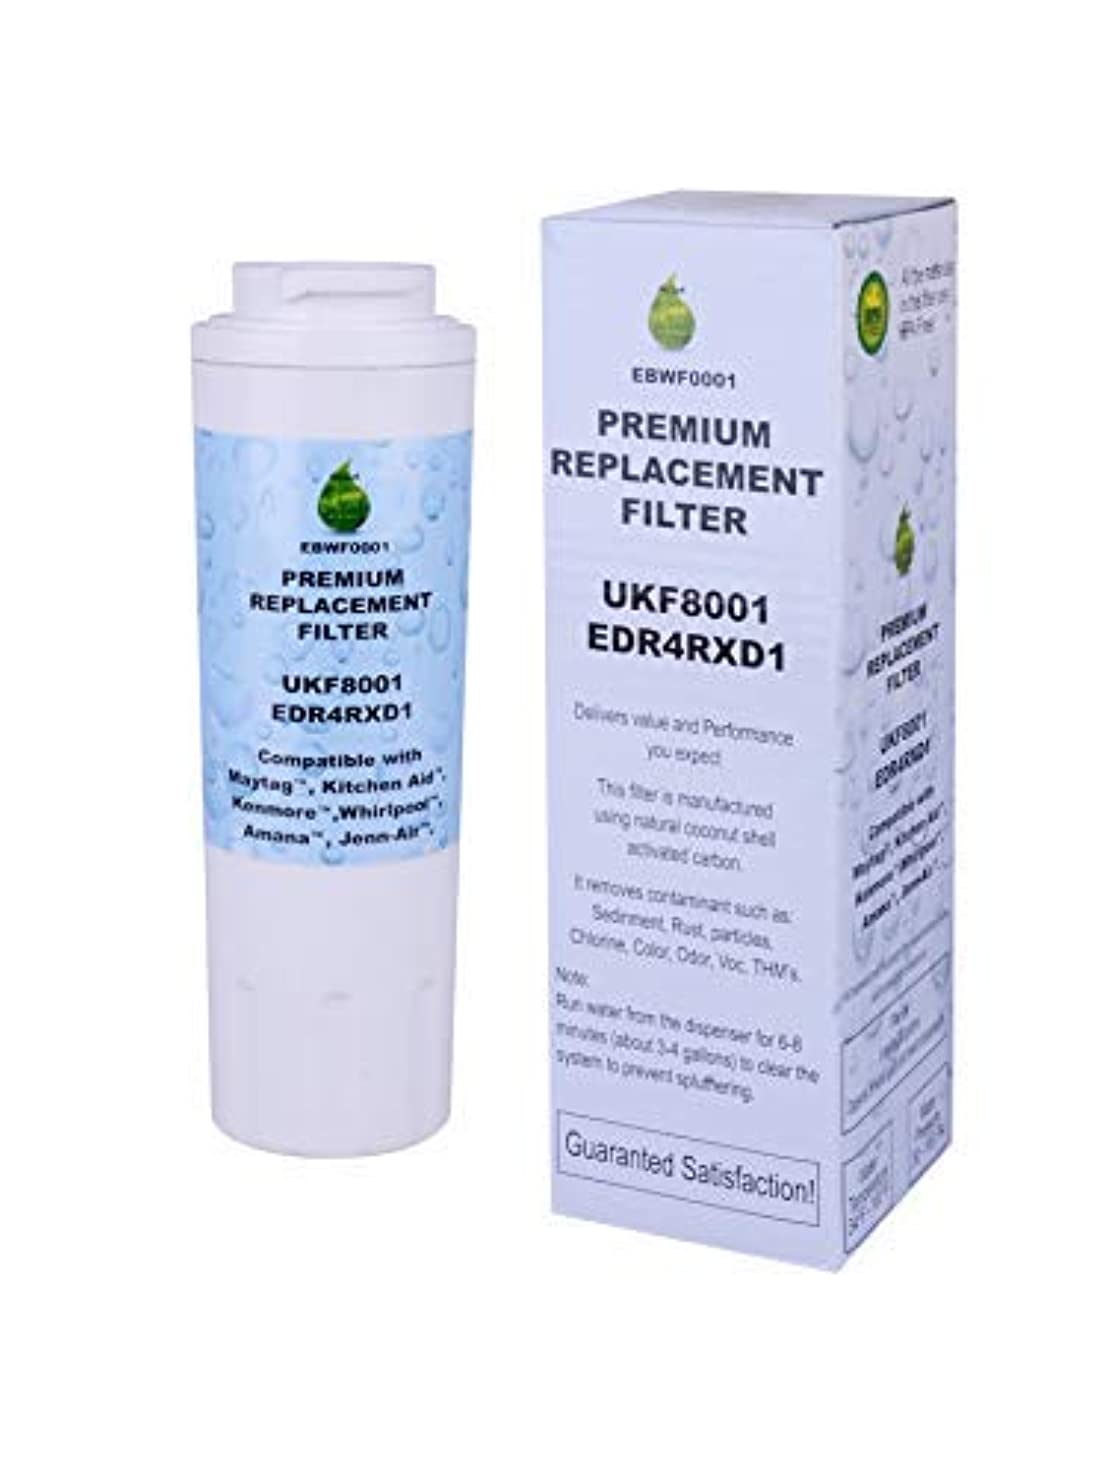 Pure earth UKF8001 Replacement by Compatible With Refrigerator Water Filter Whirlpool 4396395, EDR4RXD1, Kenmore46-9006, Maytag UKF8001, UKF8001AXX, Amana, Kitchenaid, Everydrop filter4, Puriclean II